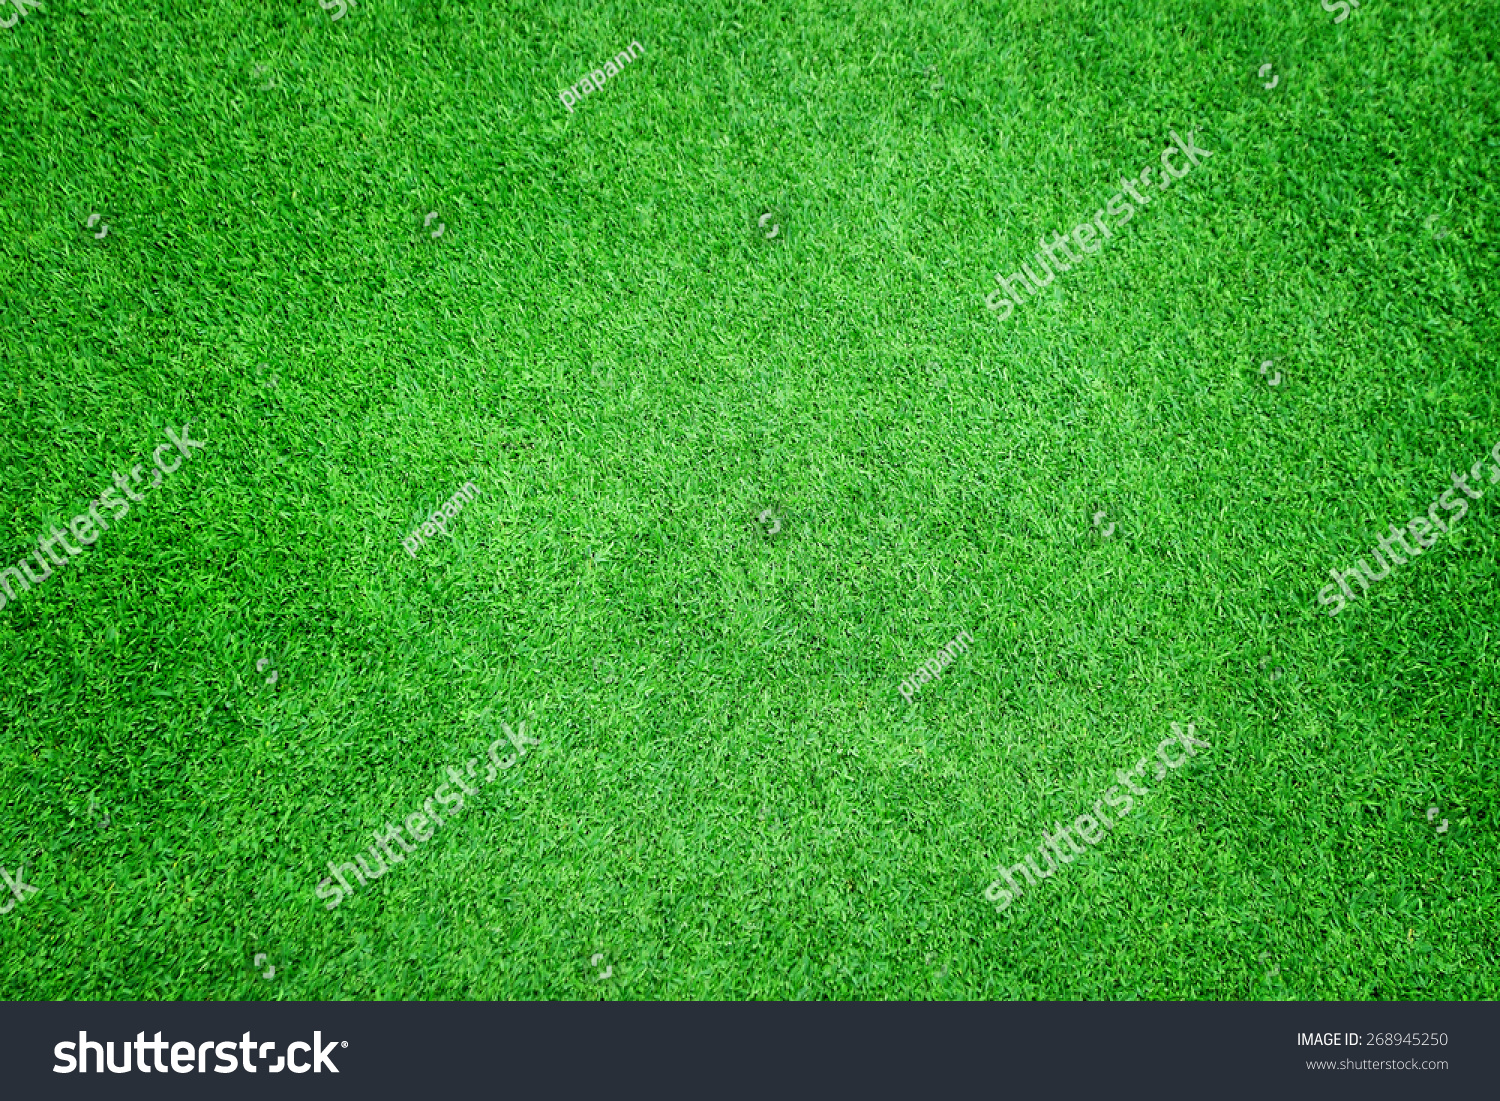 Beautiful green grass texture stock photo 268945250 for Pretty grass